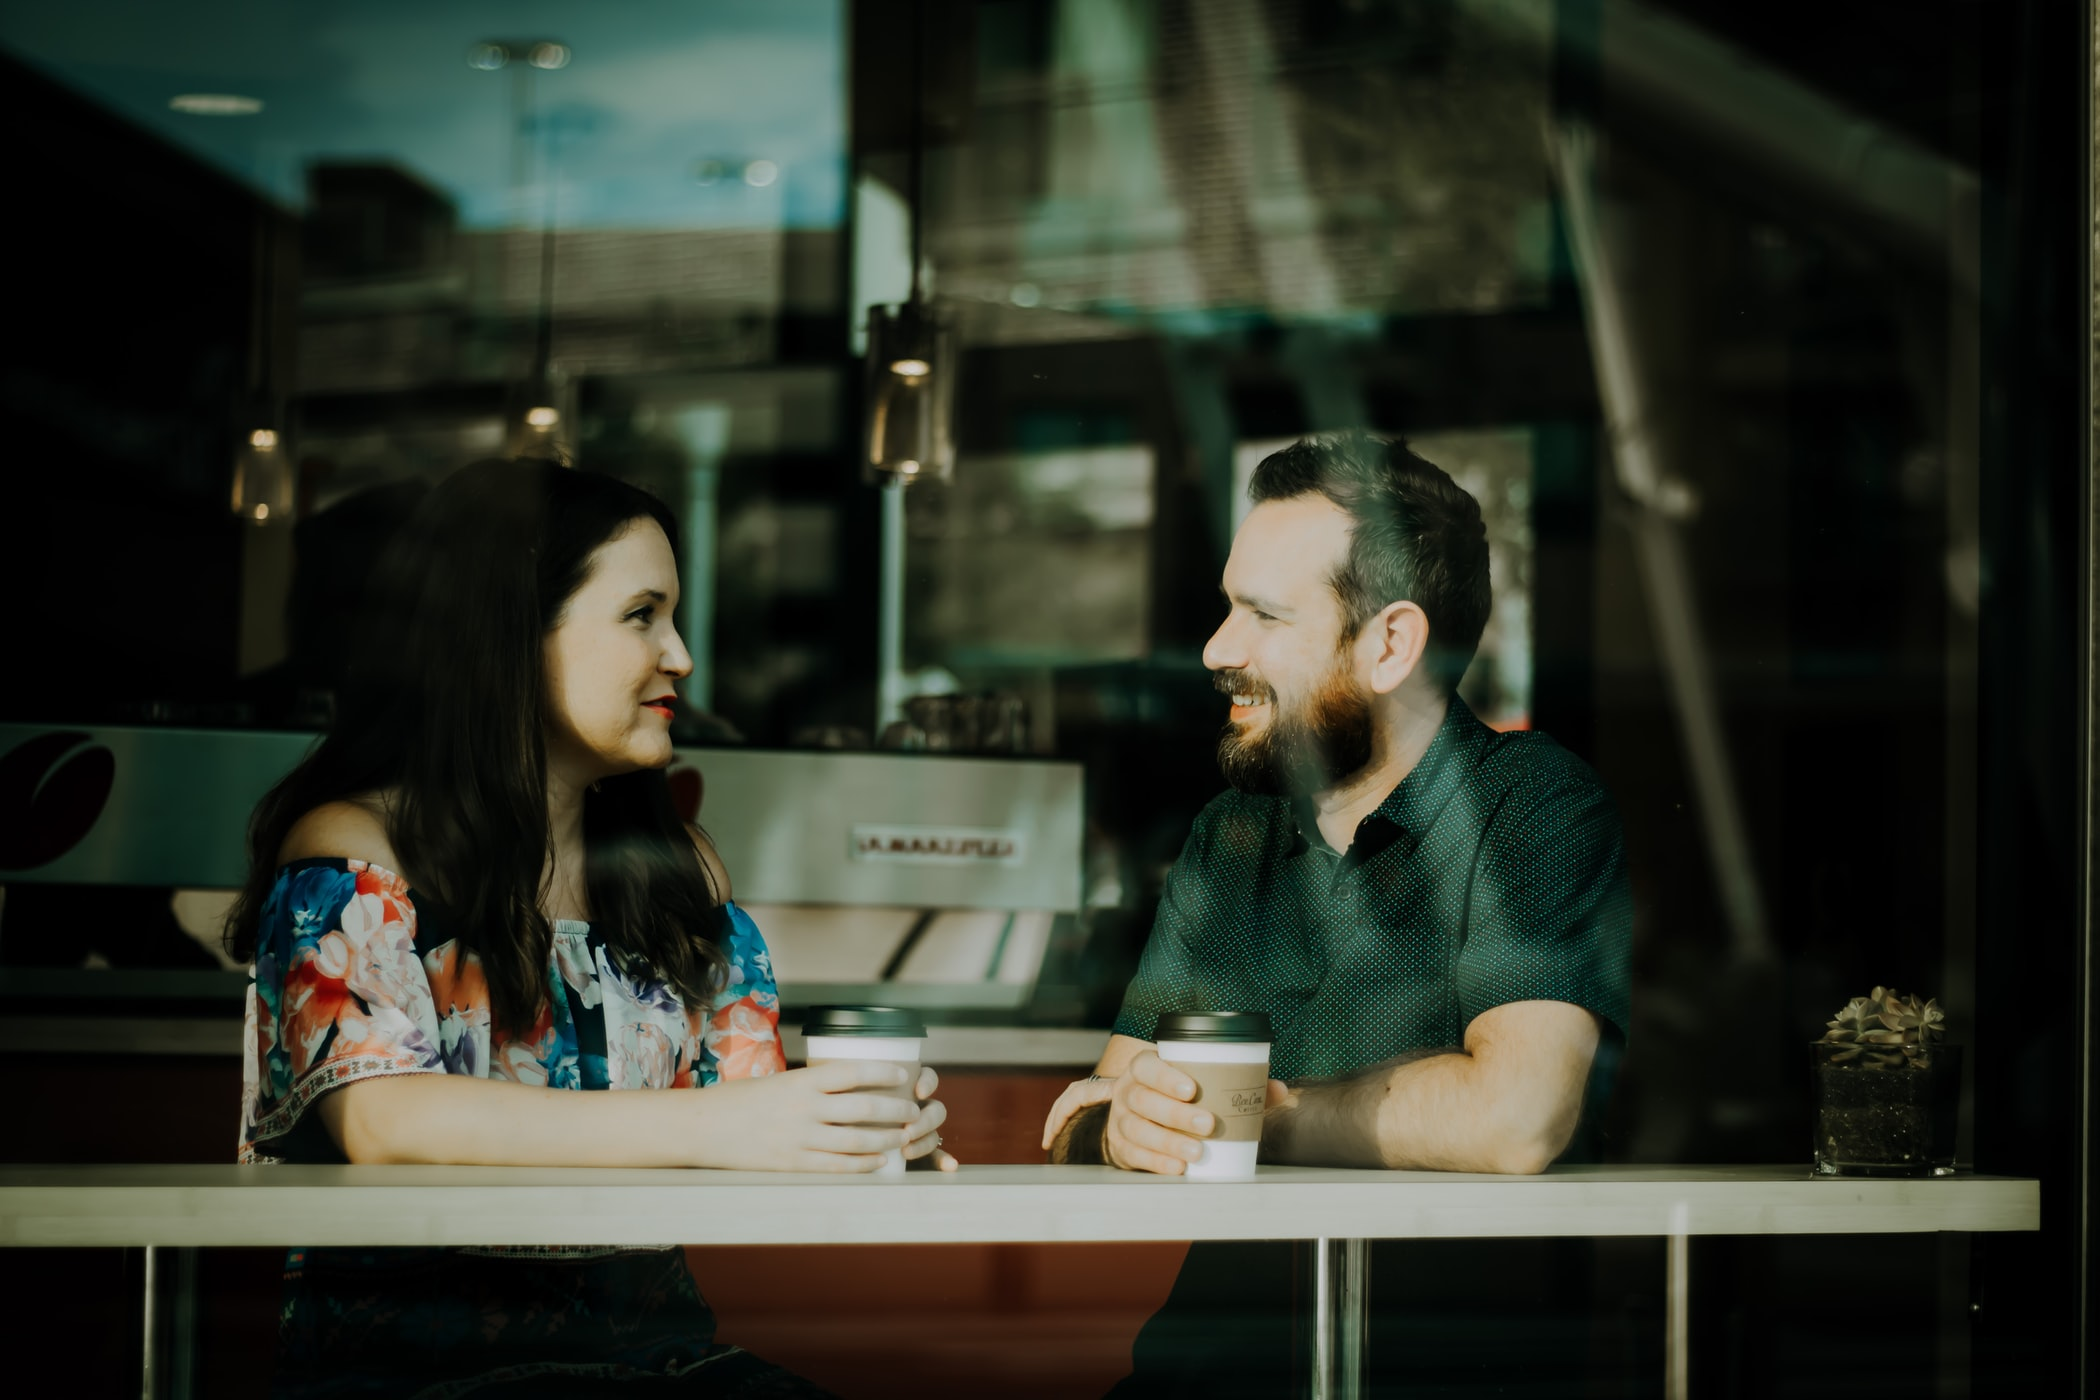 couple sitting at a cafe window and looking at each other